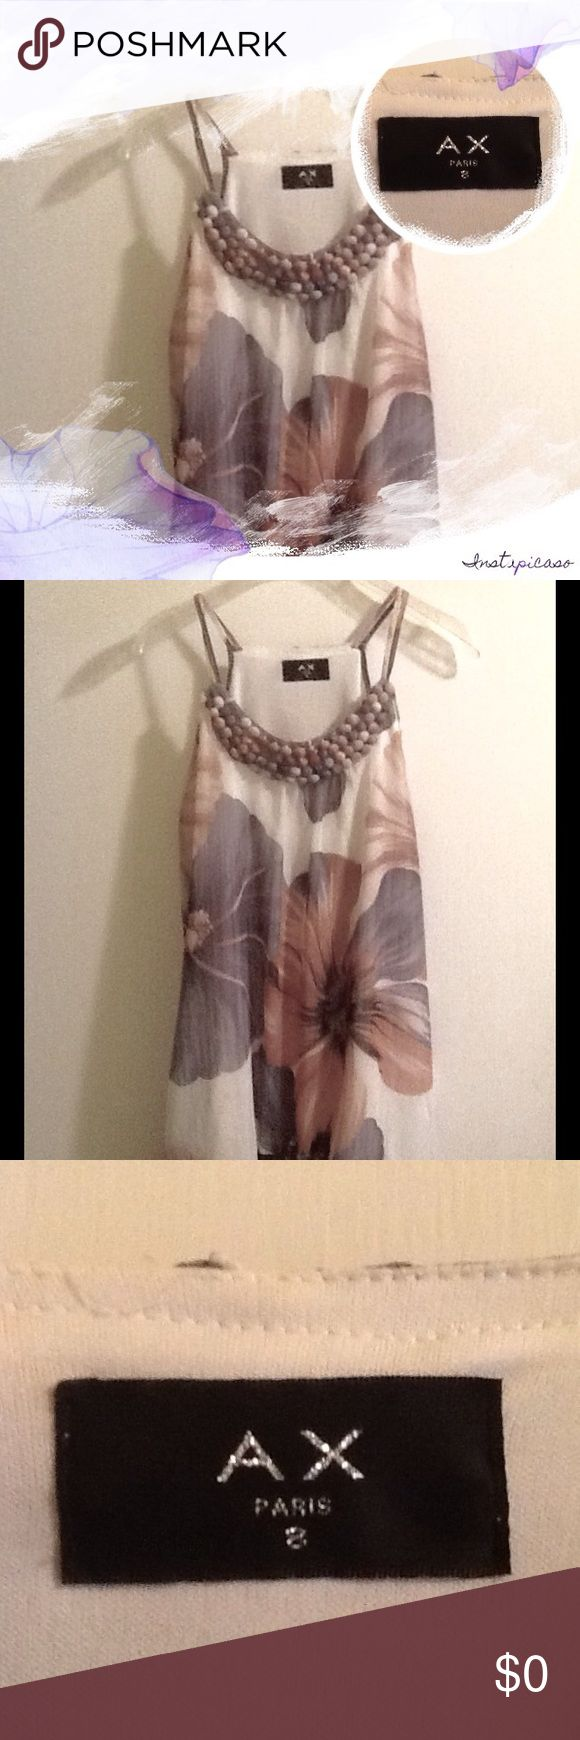 🆕💕ARMANI EXCHANGE Abstract Floral Balloon Hem💕 💕 GORGEOUS ARMANI EXCHANGE Sleeveless Abstract Floral Top/Tunic has lingerie straps and flirty balloon skirt.  Little ball buttons decorate the scoop yoke.💕  Much prettier than photo.  Ivory, with Peach and periwinkle abstract floral design.  Fully lined.  Size 8.  EUC. Armani Exchange Tops Tunics